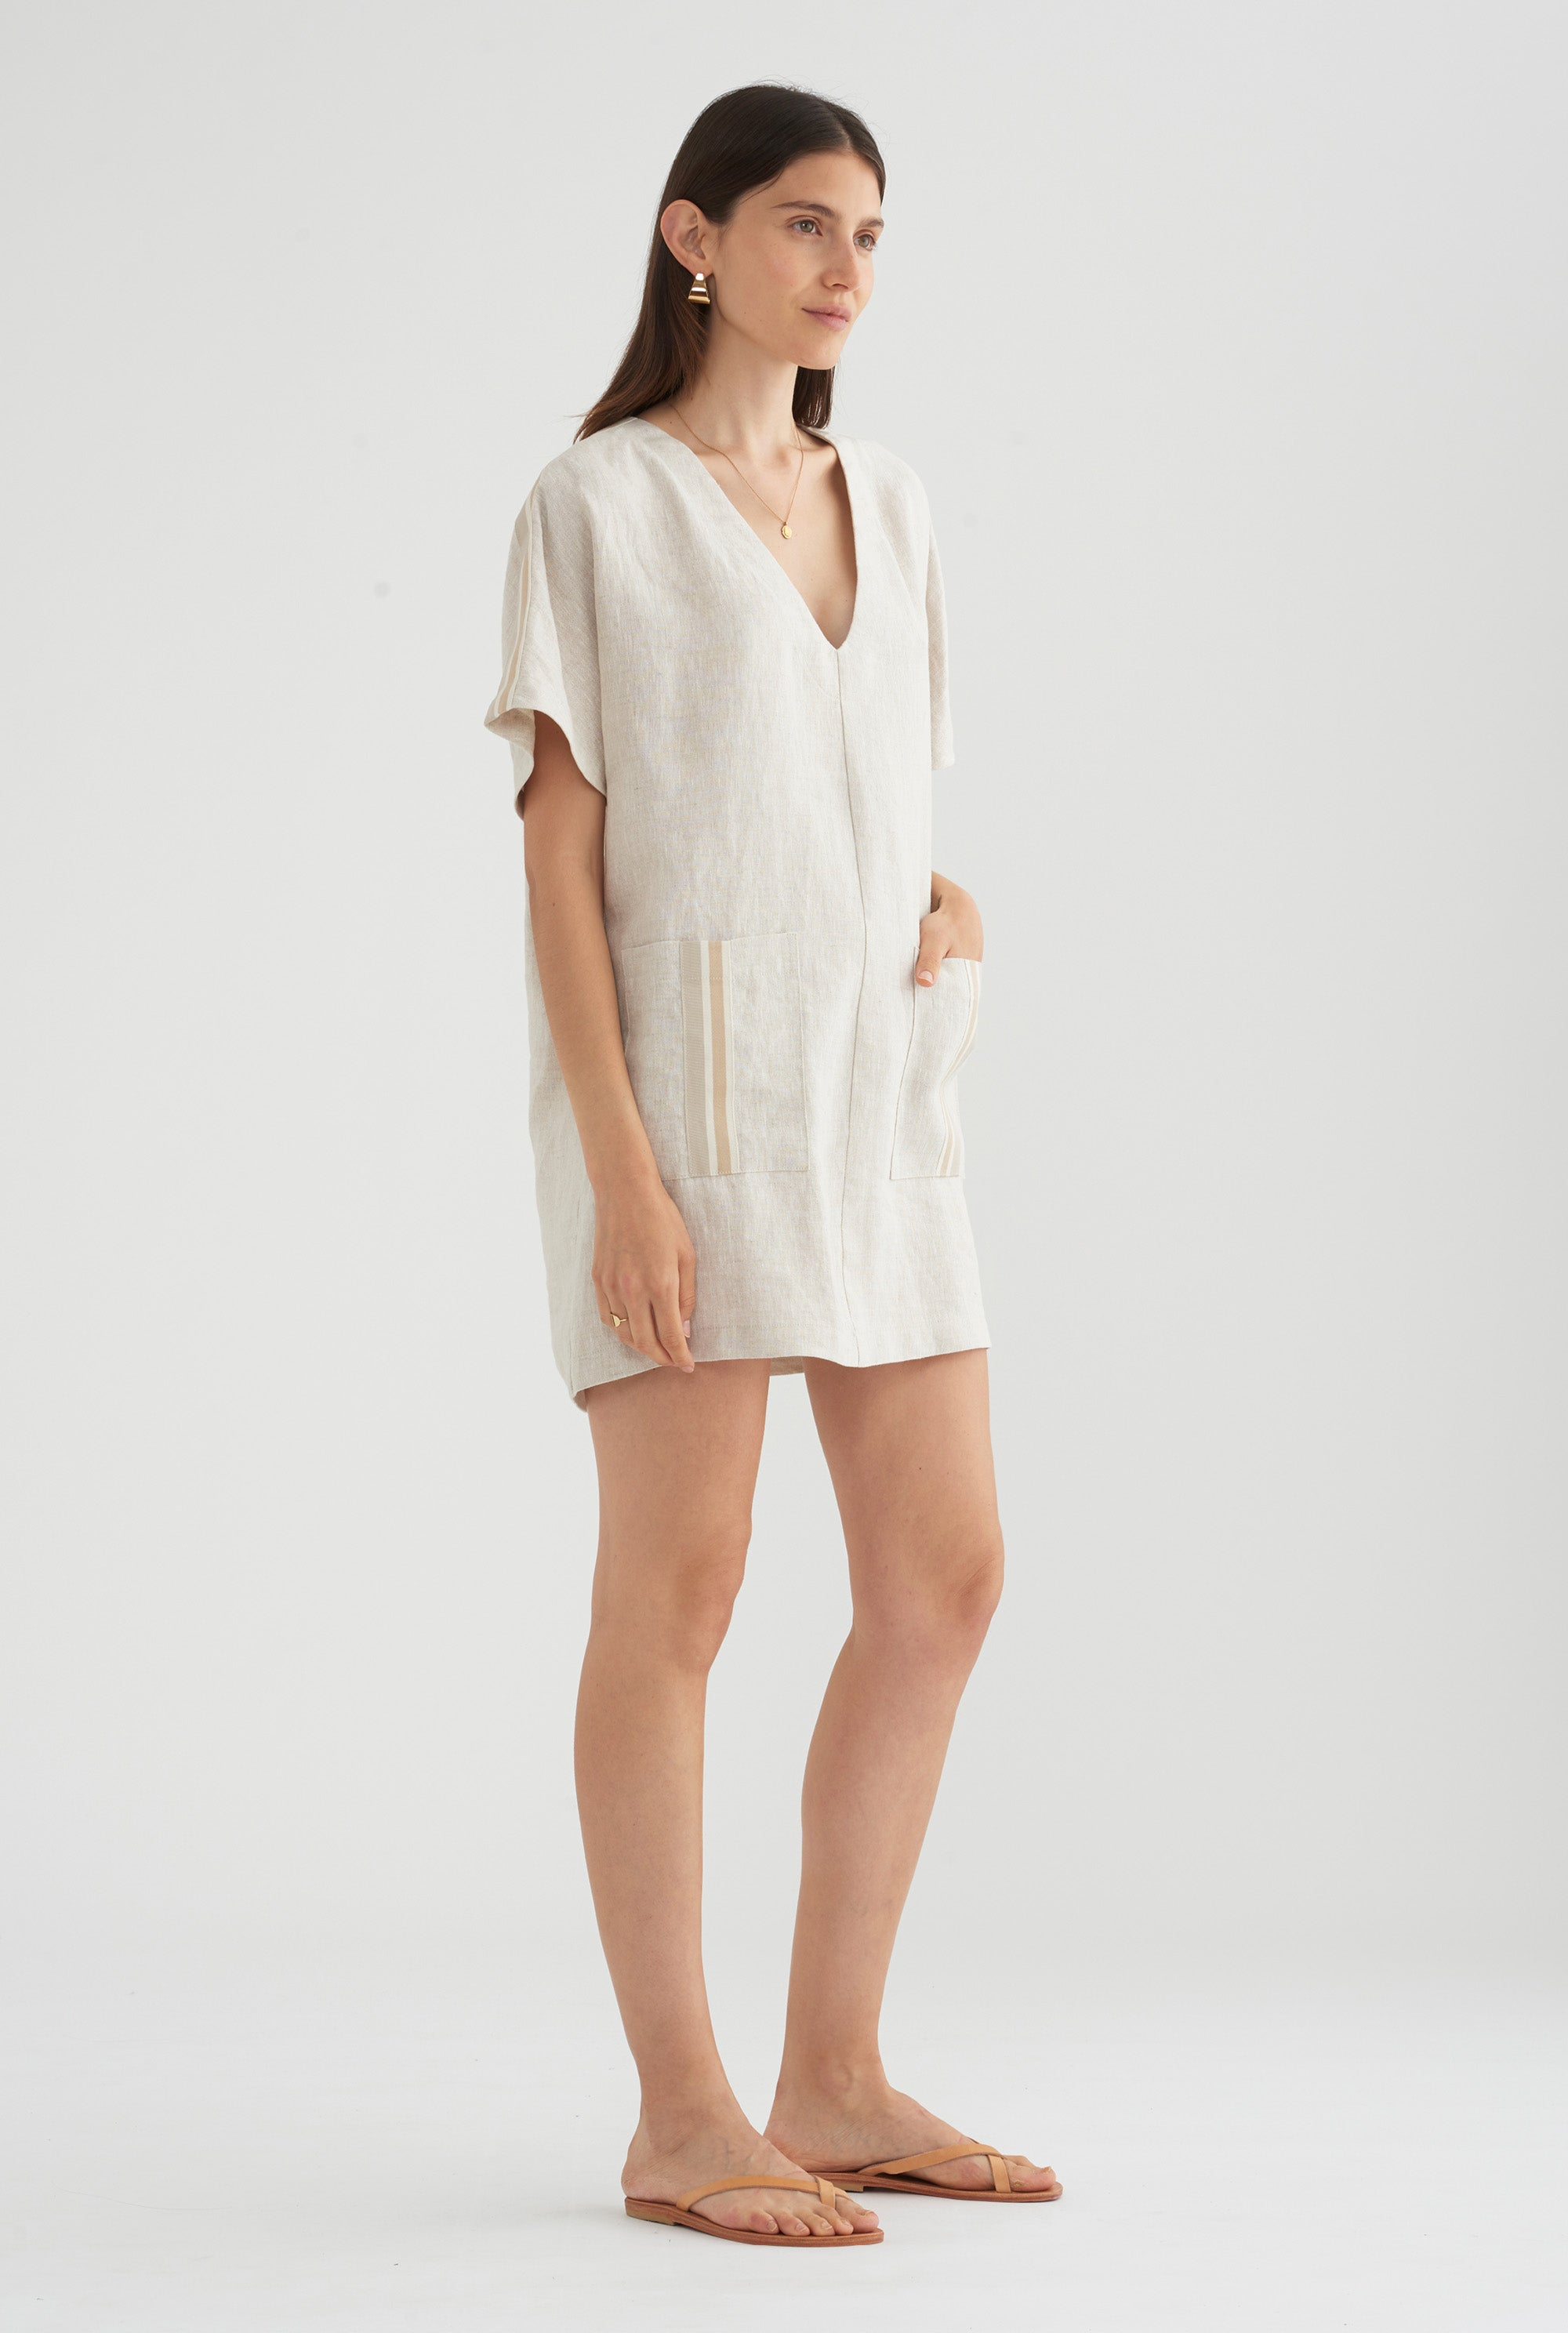 Linen Pop Over Dress - Sand